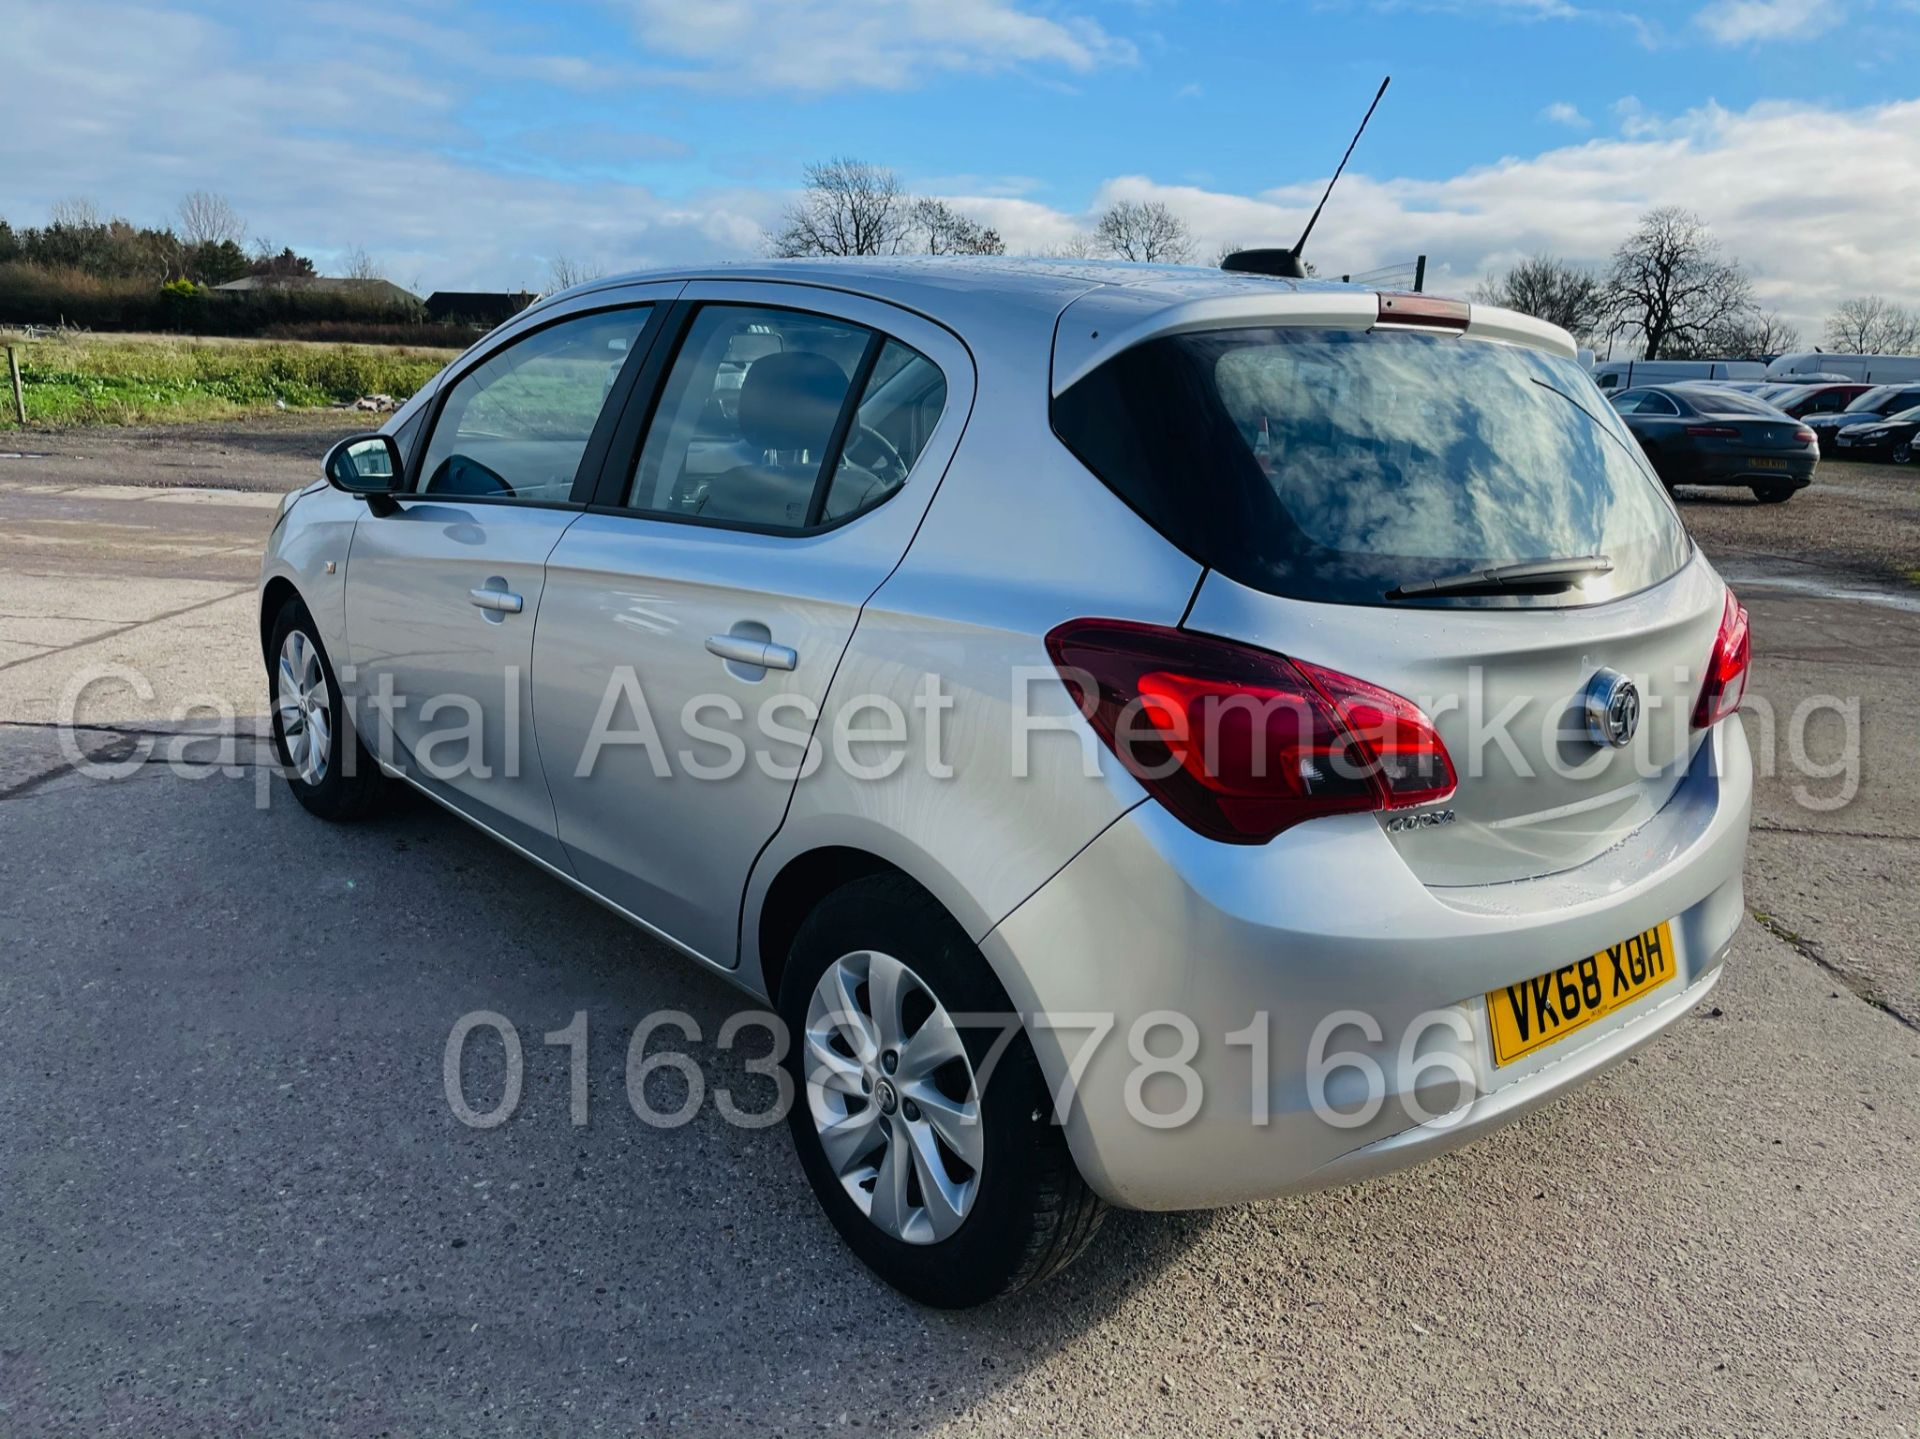 On Sale VAUXHALL CORSA *DESIGN EDITION* 5 DOOR HATCHBACK (2019 - NEW MODEL) 1.4 PETROL - (1 OWNER) - Image 10 of 42